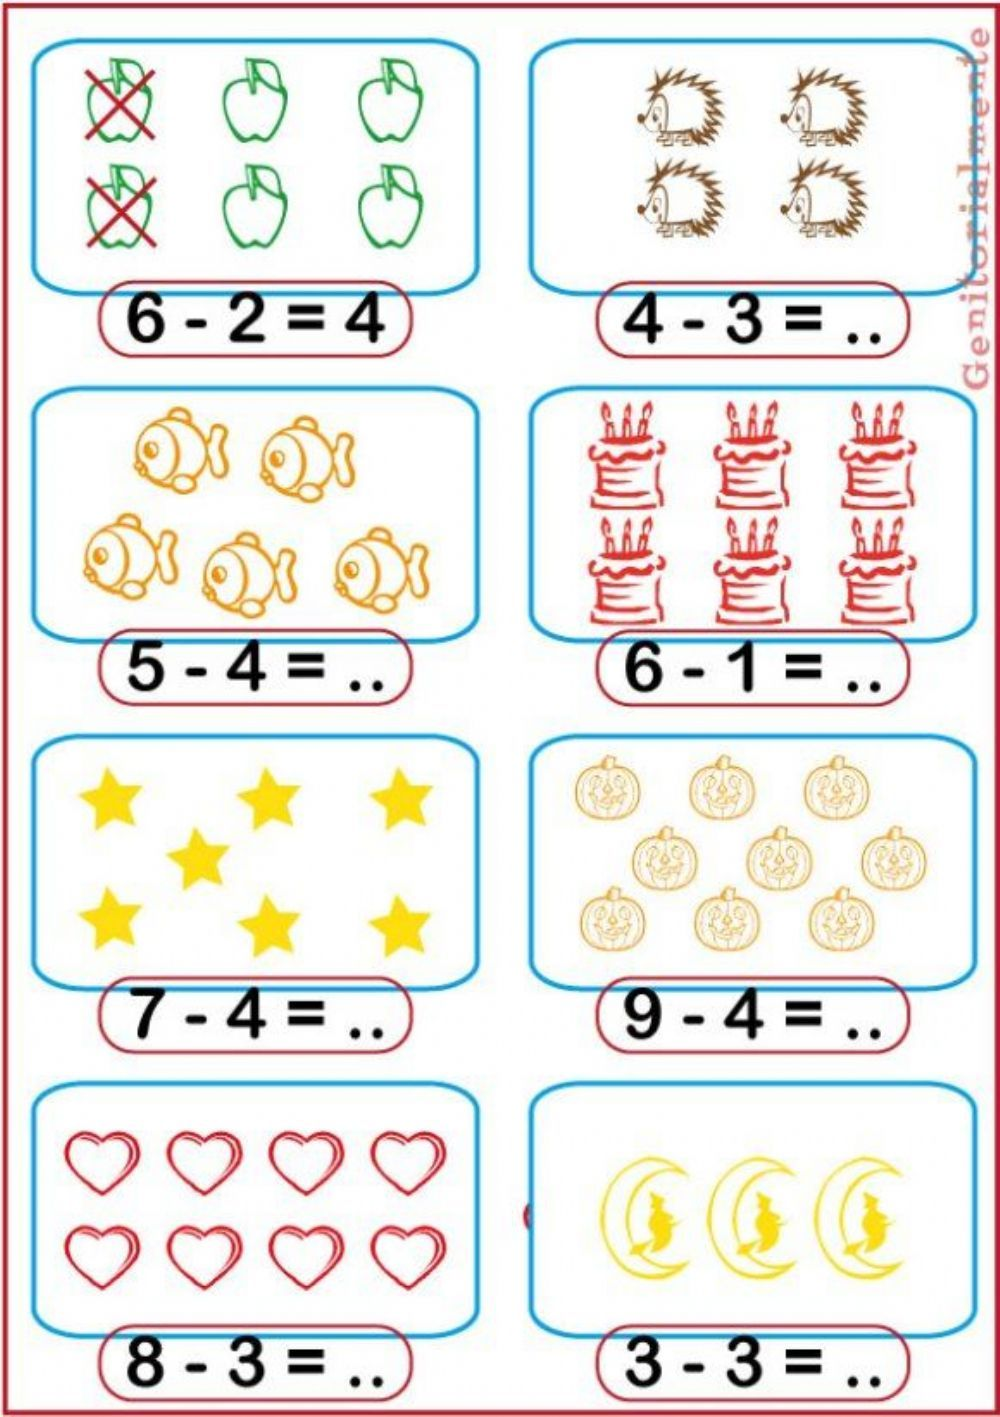 Sottrazioni Interactive And Downloadable Worksheet You Can Do The Exer Kids Math Worksheets Kindergarten Math Worksheets Kindergarten Math Worksheets Addition [ 1417 x 1000 Pixel ]